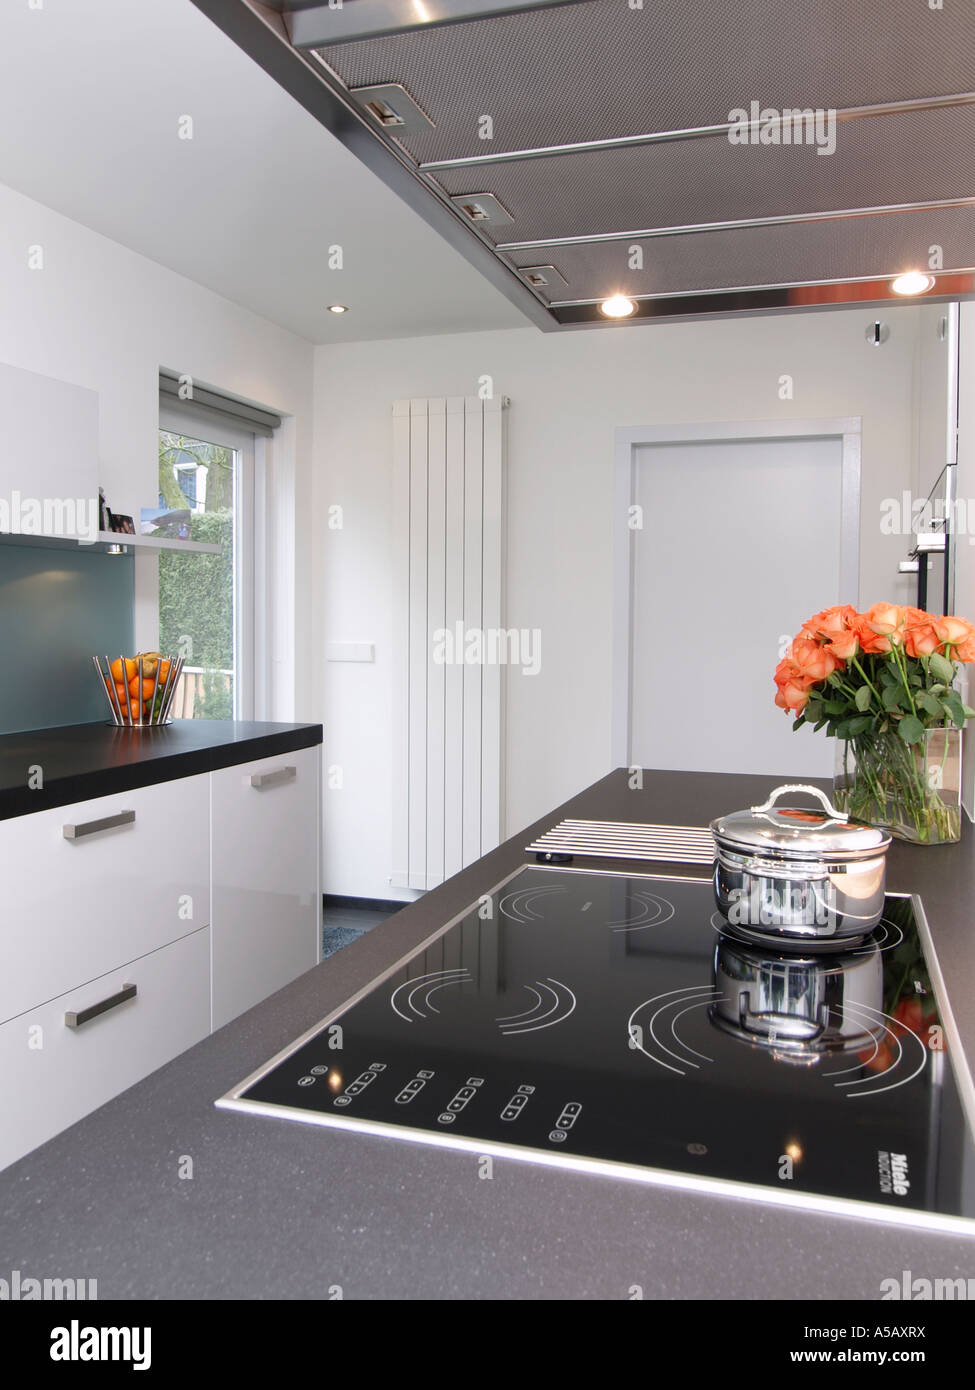 Modern style white kitchen with induction cooker and design radiator heating clean flowers mortgage